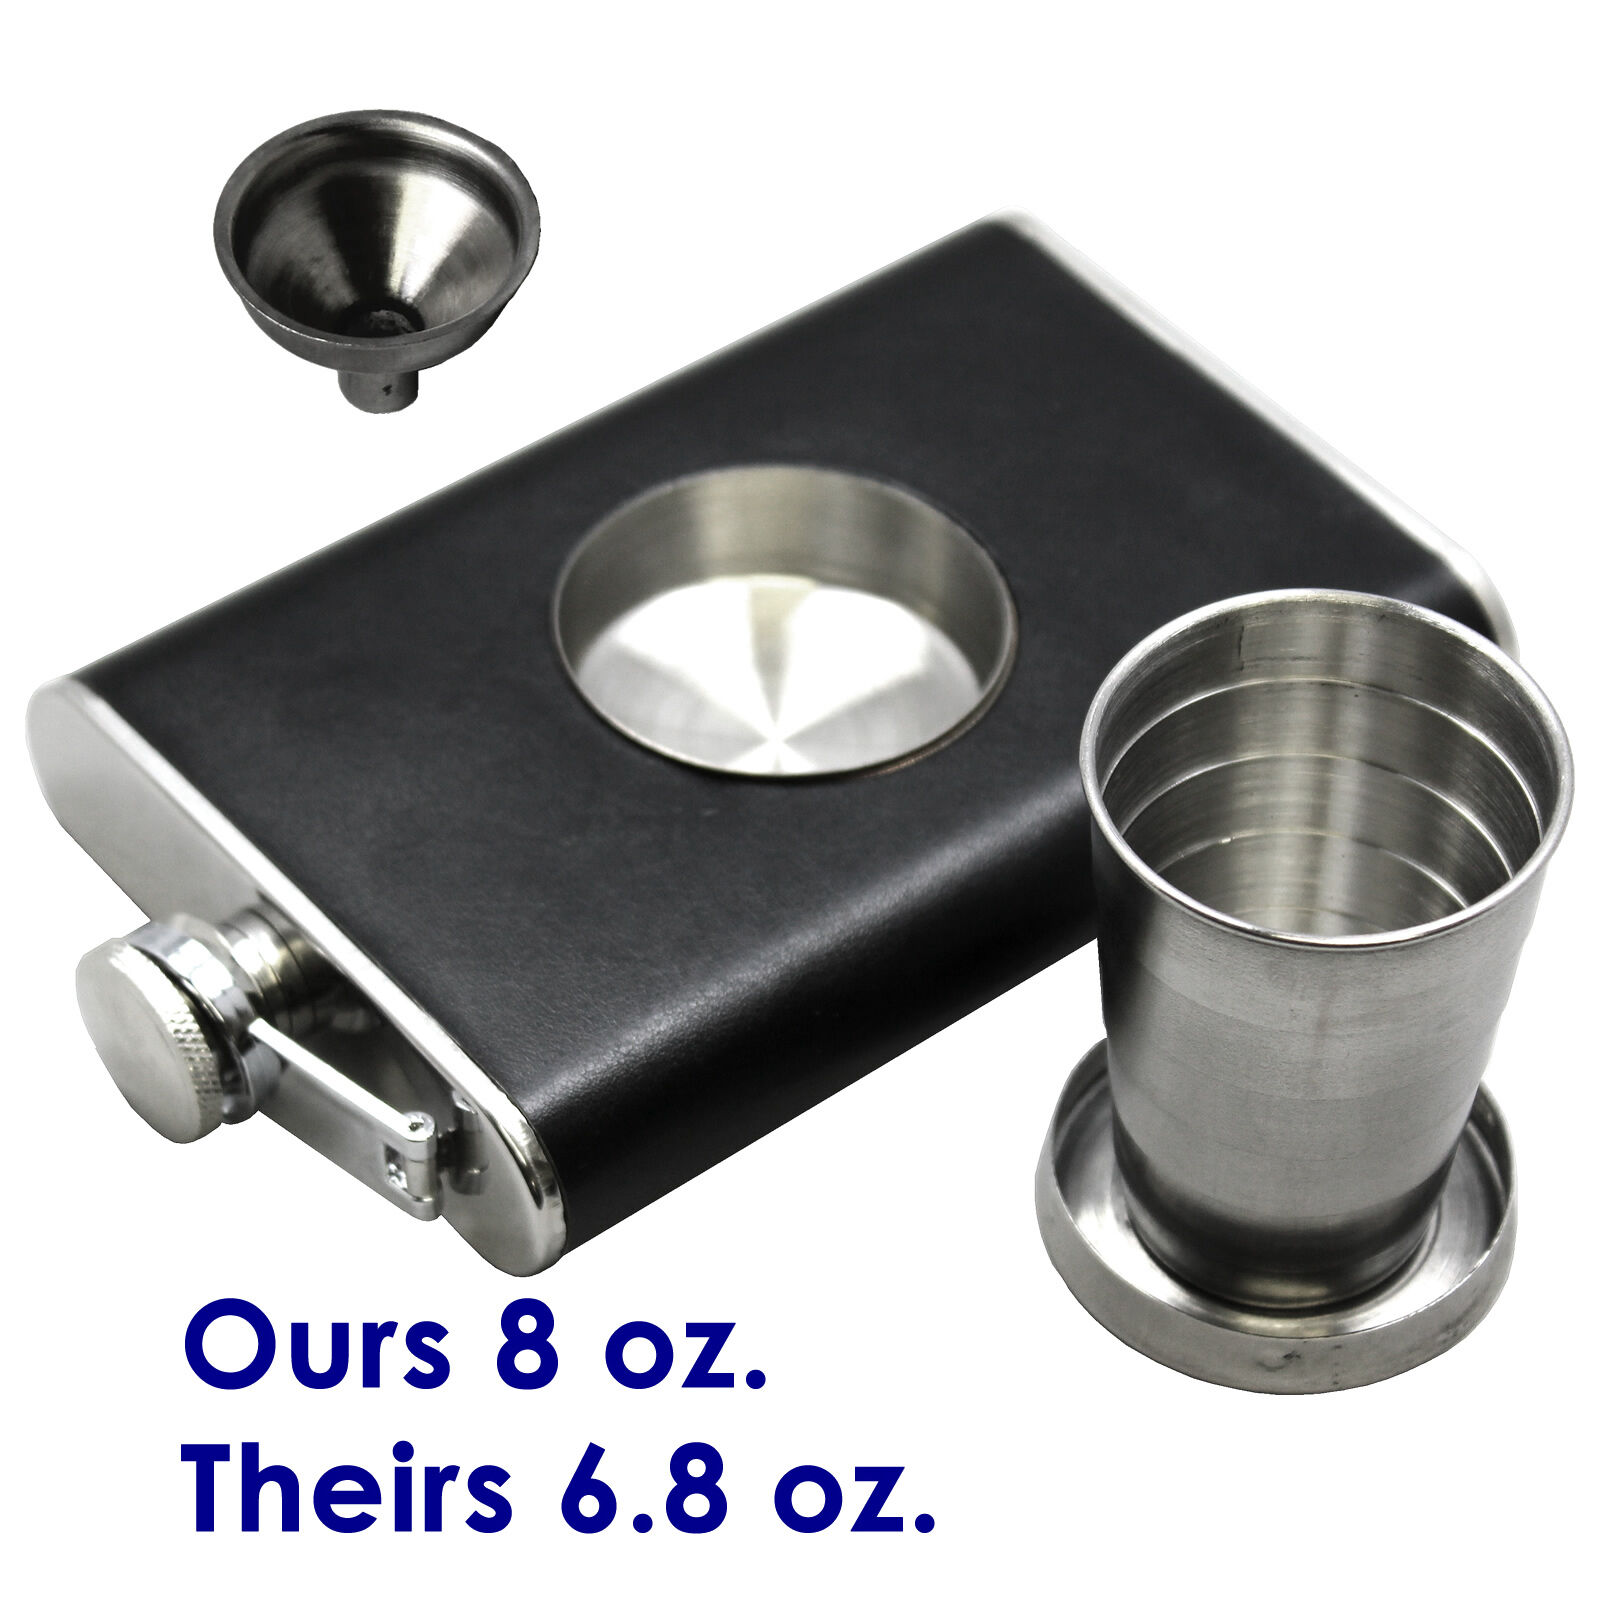 Leather Clad Stainless Steel Flask with Funnel /& Built-in Collapsible Shot Glass